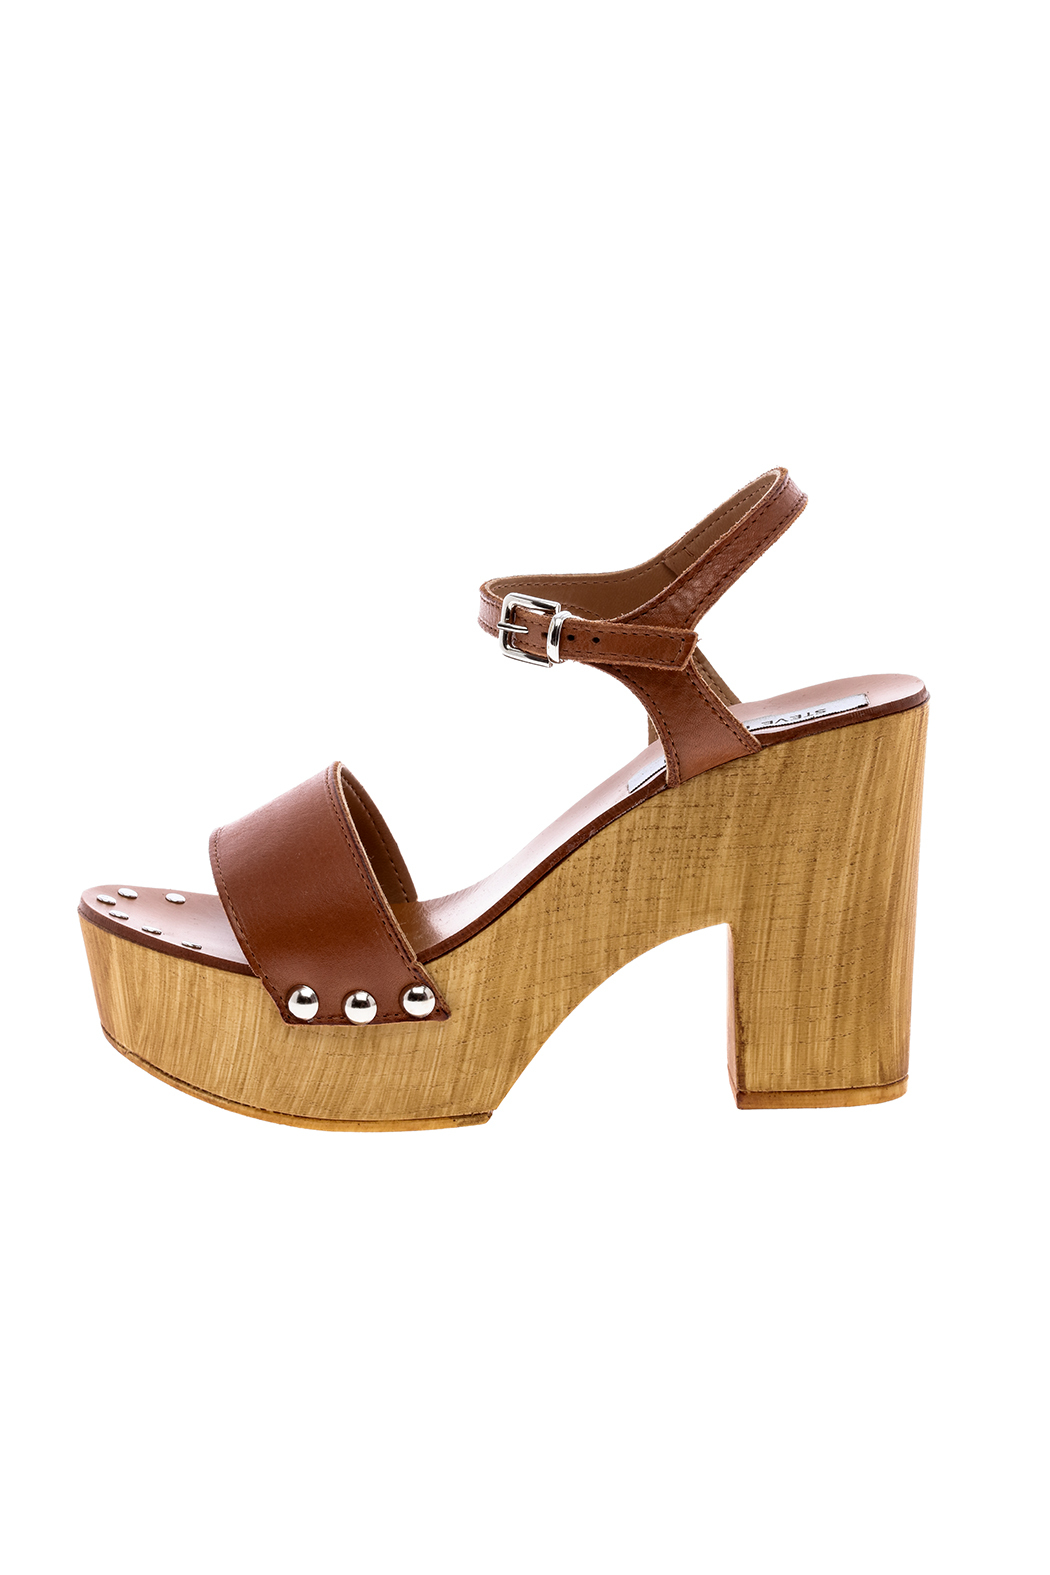 f0f2d9f939d Steve Madden Lavii Wooden Platform Sandal from Los Angeles by SIANY ...